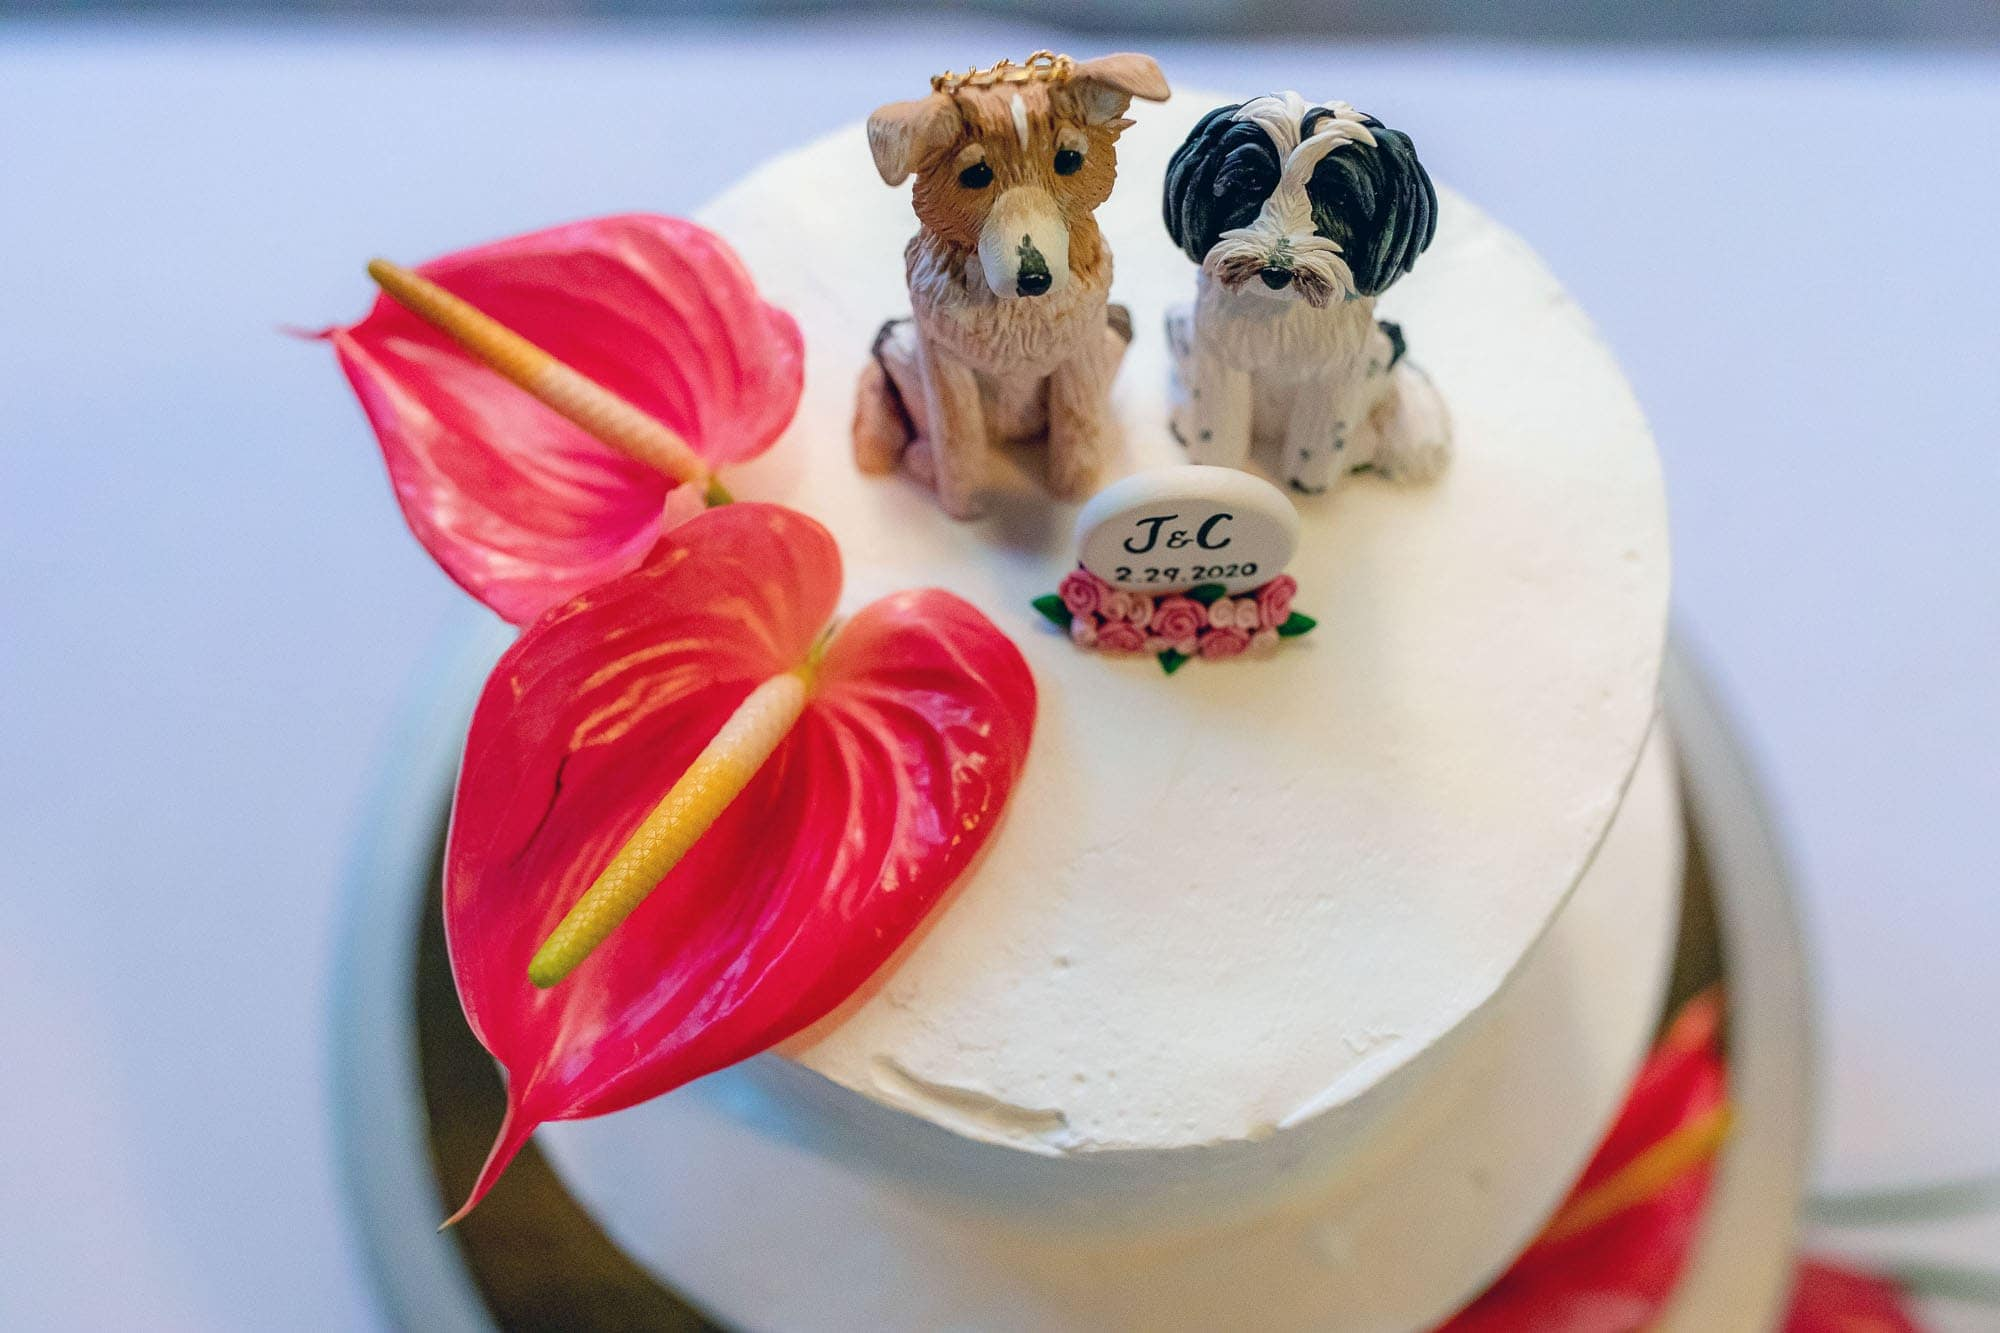 Furry friends on the wedding cake